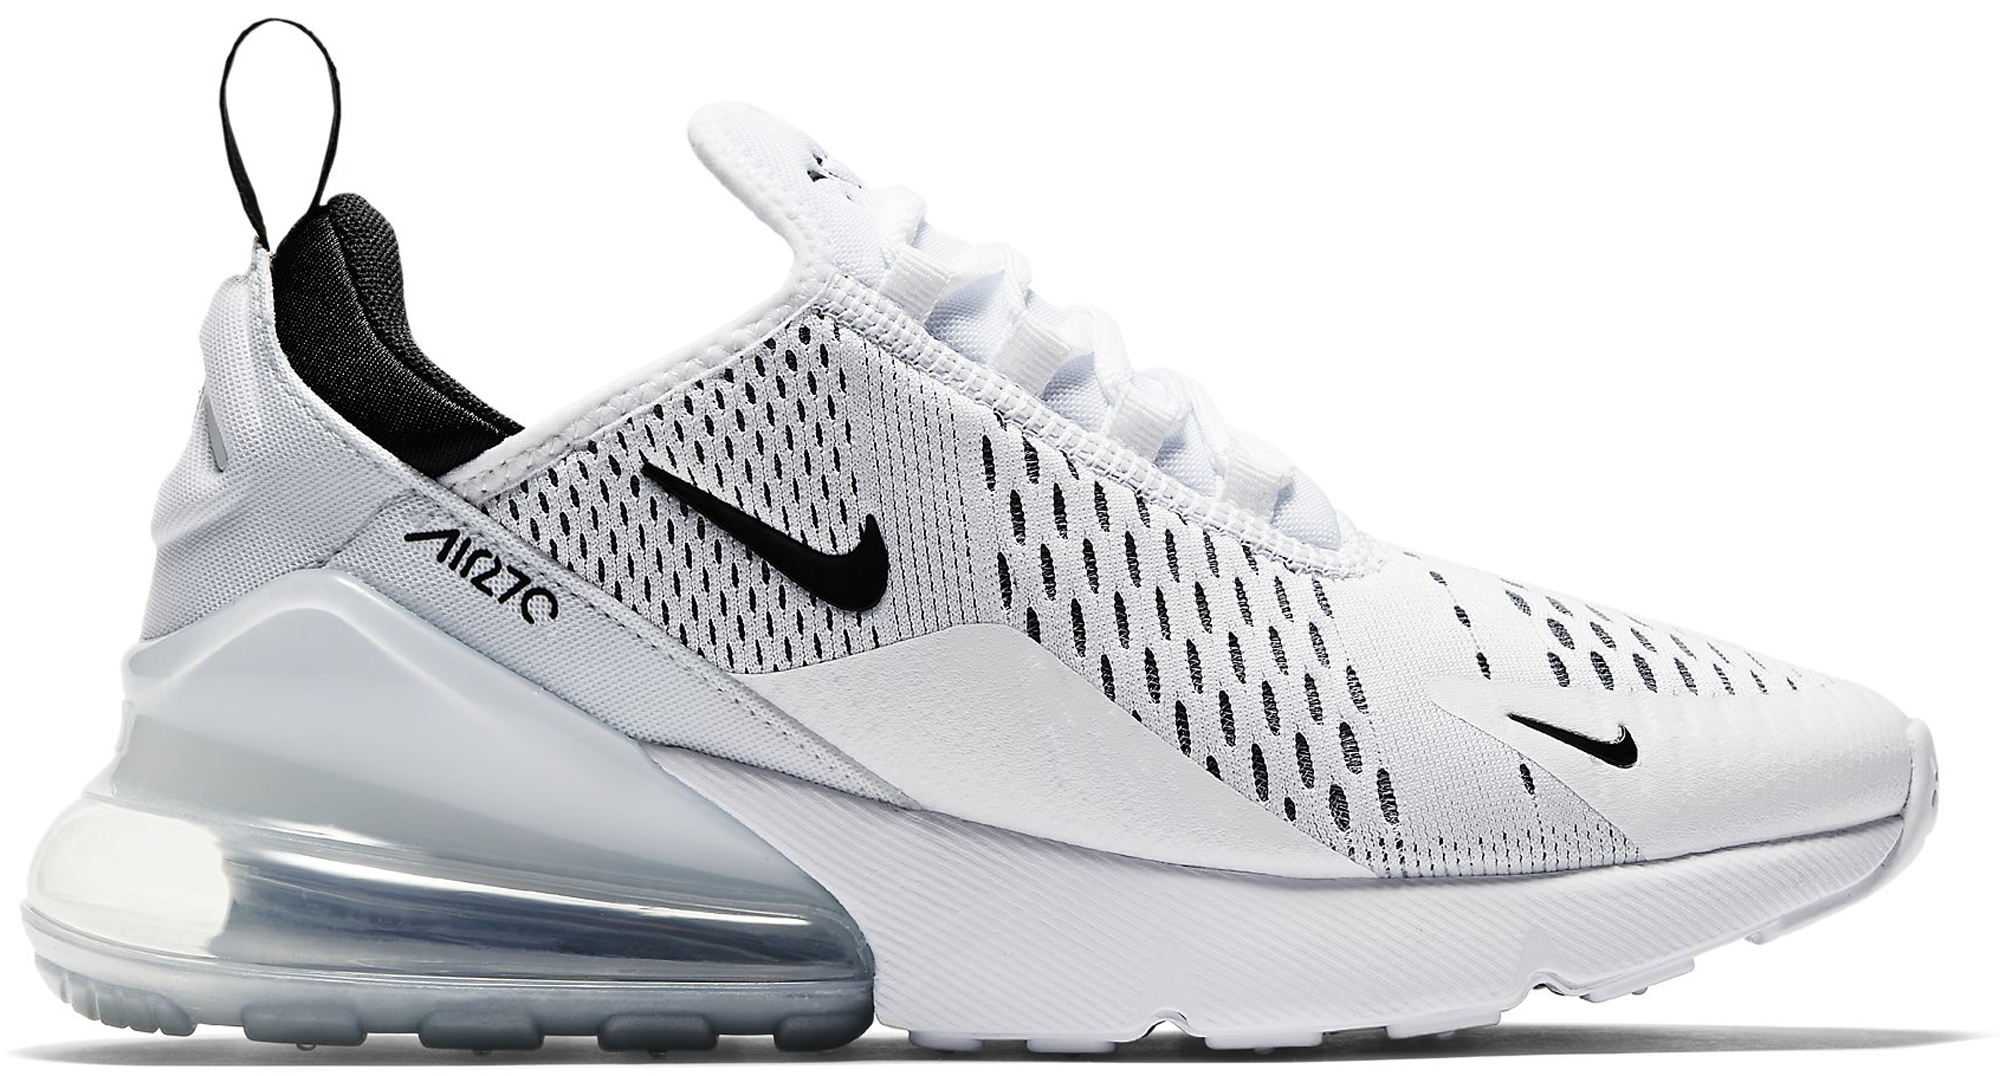 official photos 4d445 c9521 Women's Nike Air Max 270 White Black